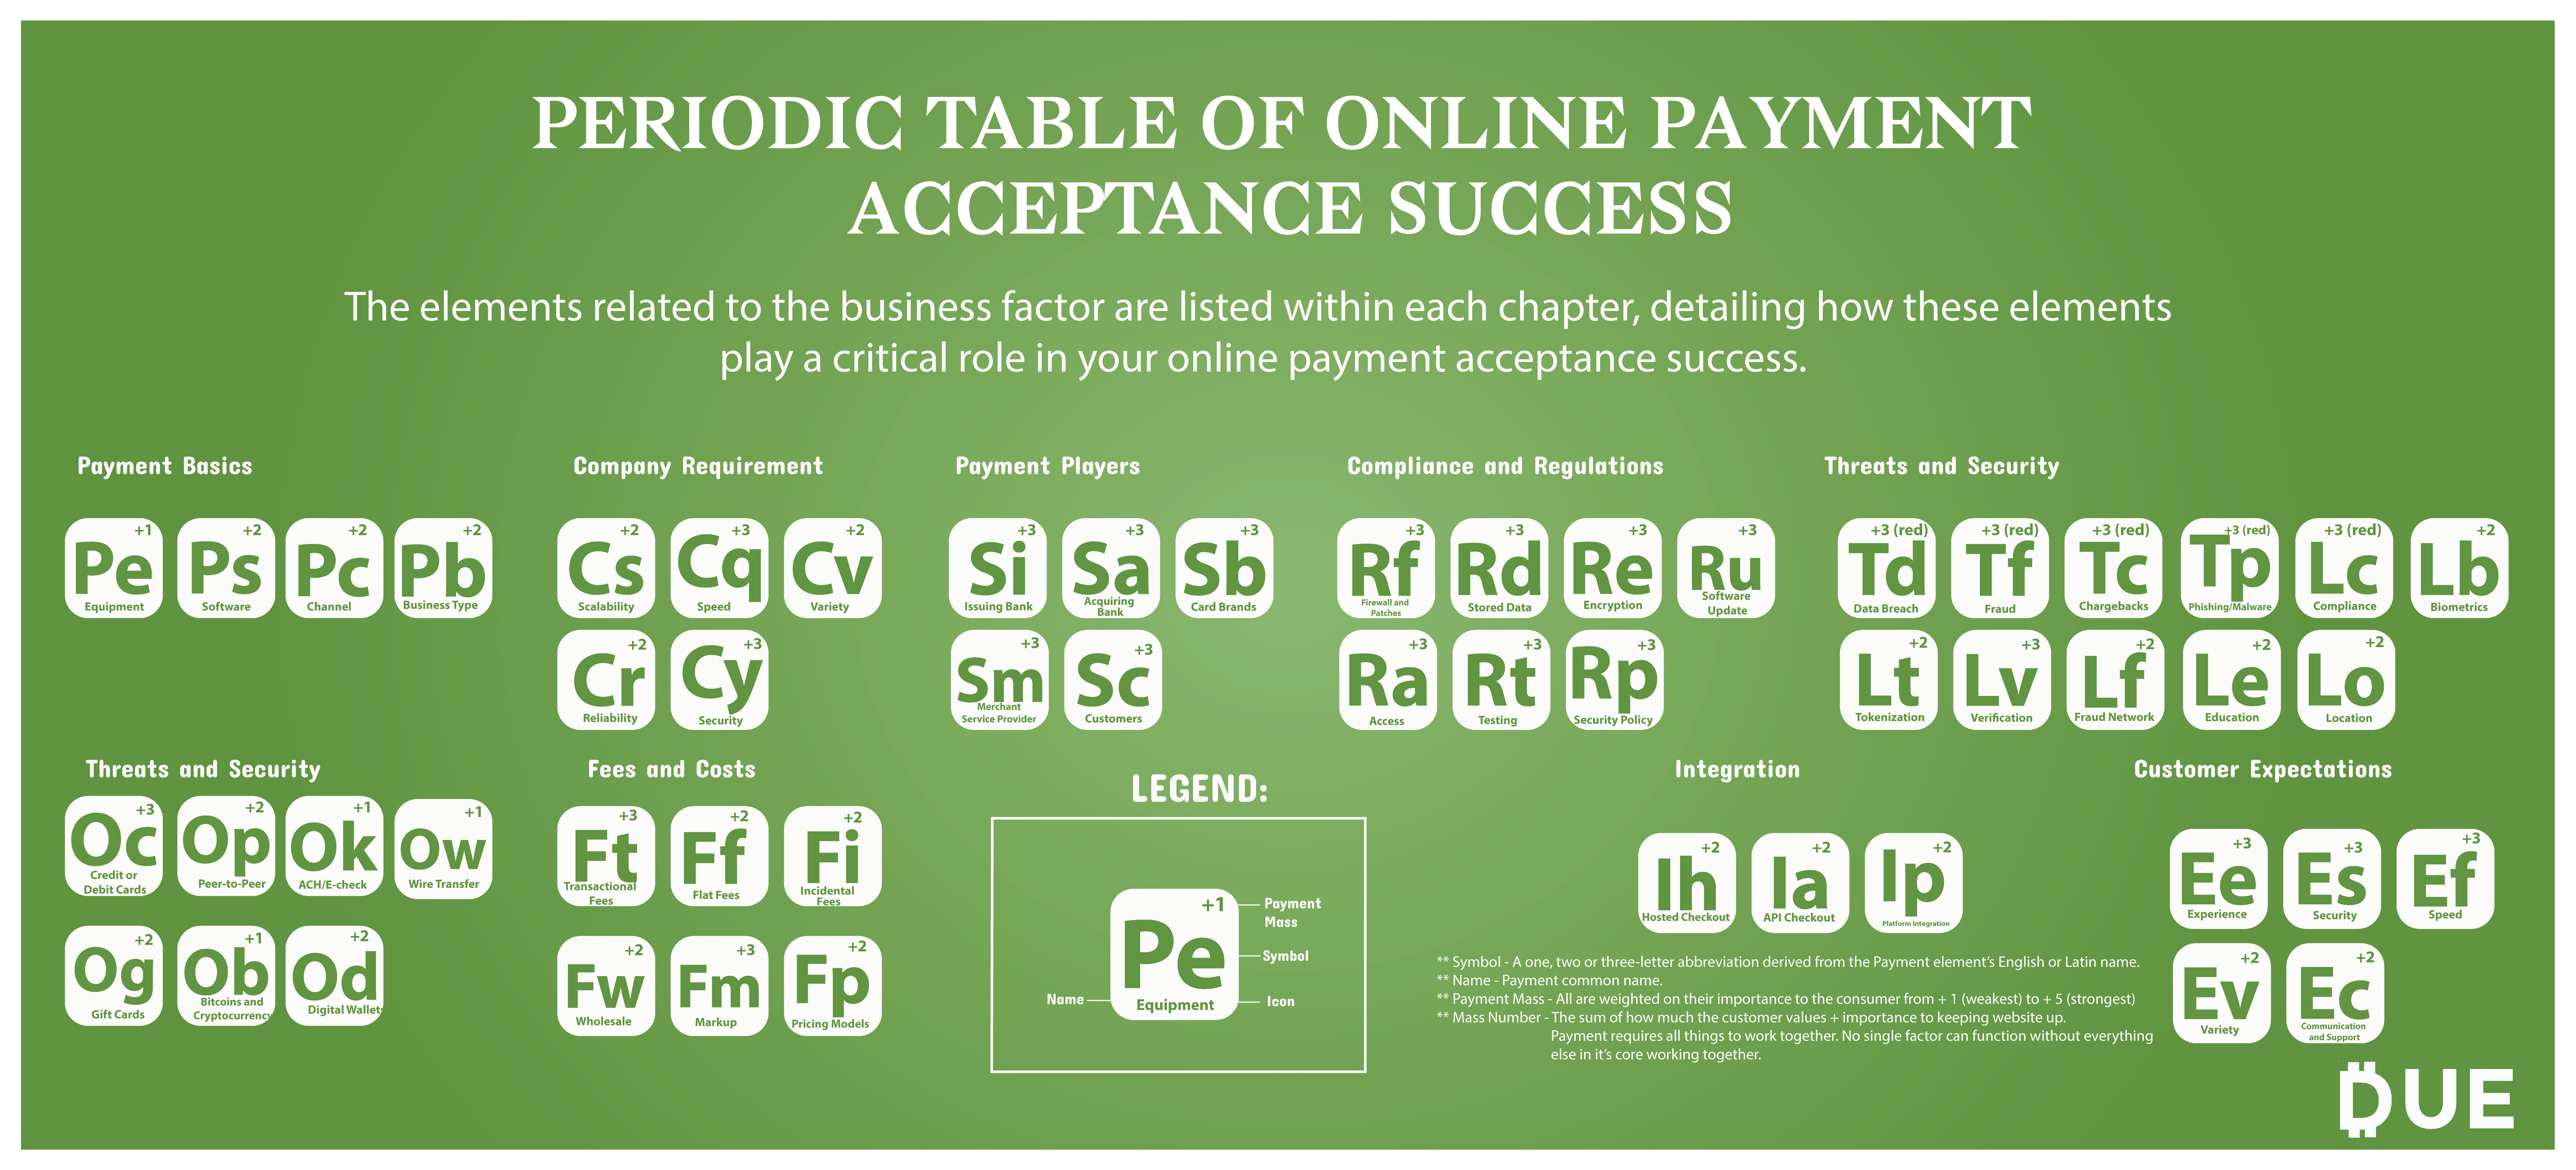 Periodic Table Of Online Payment Acceptance Success Due